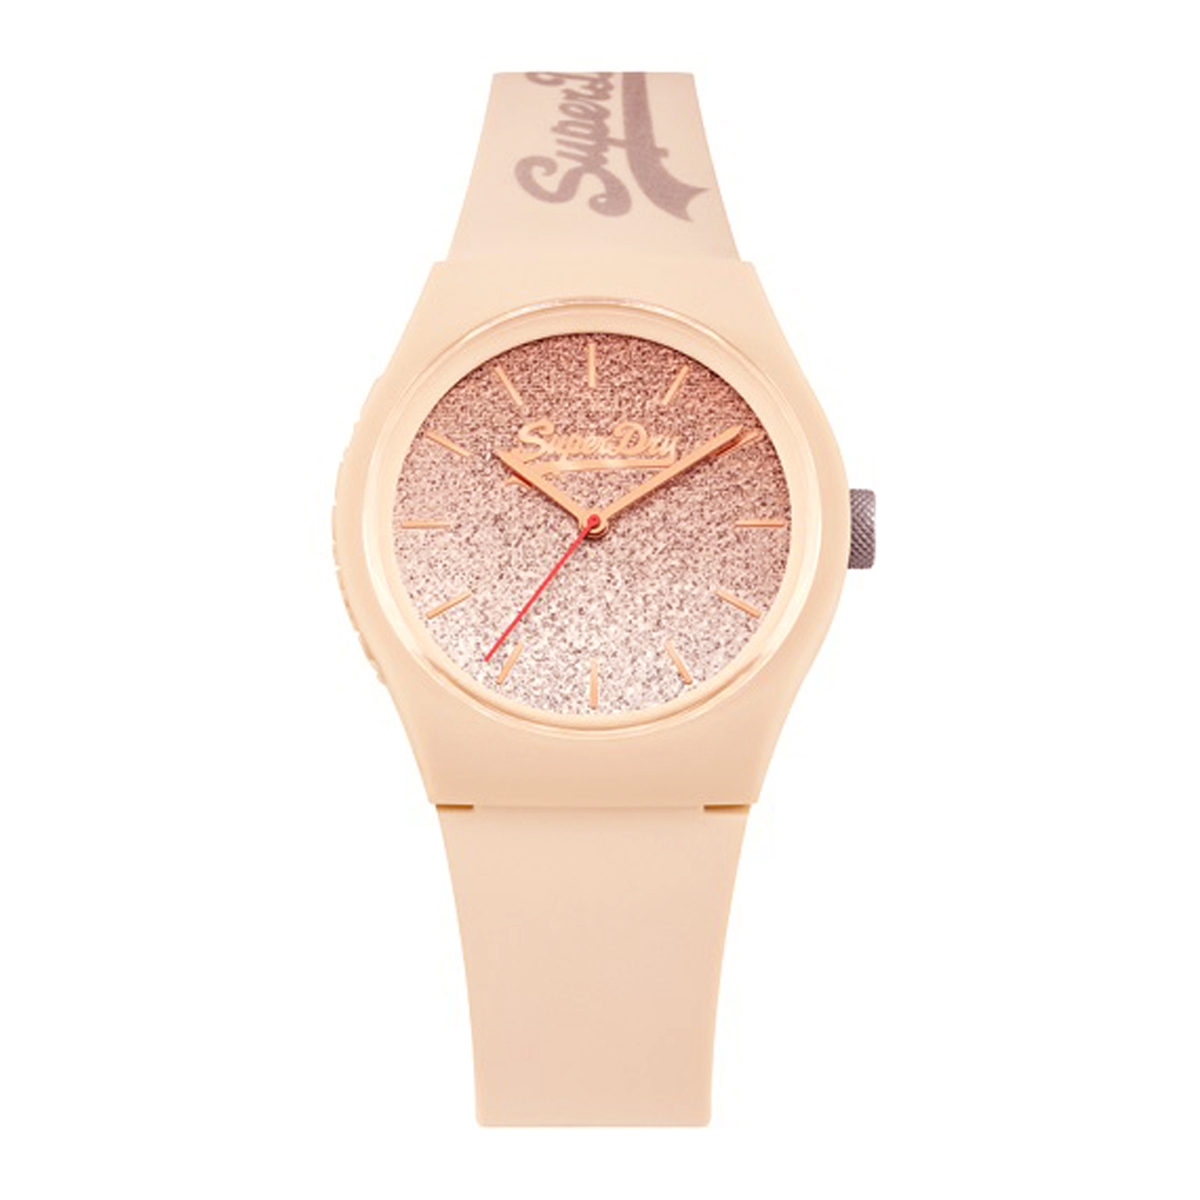 Montre silicone \'Superdry\' rose paillettes - 38 mm - [P9931]